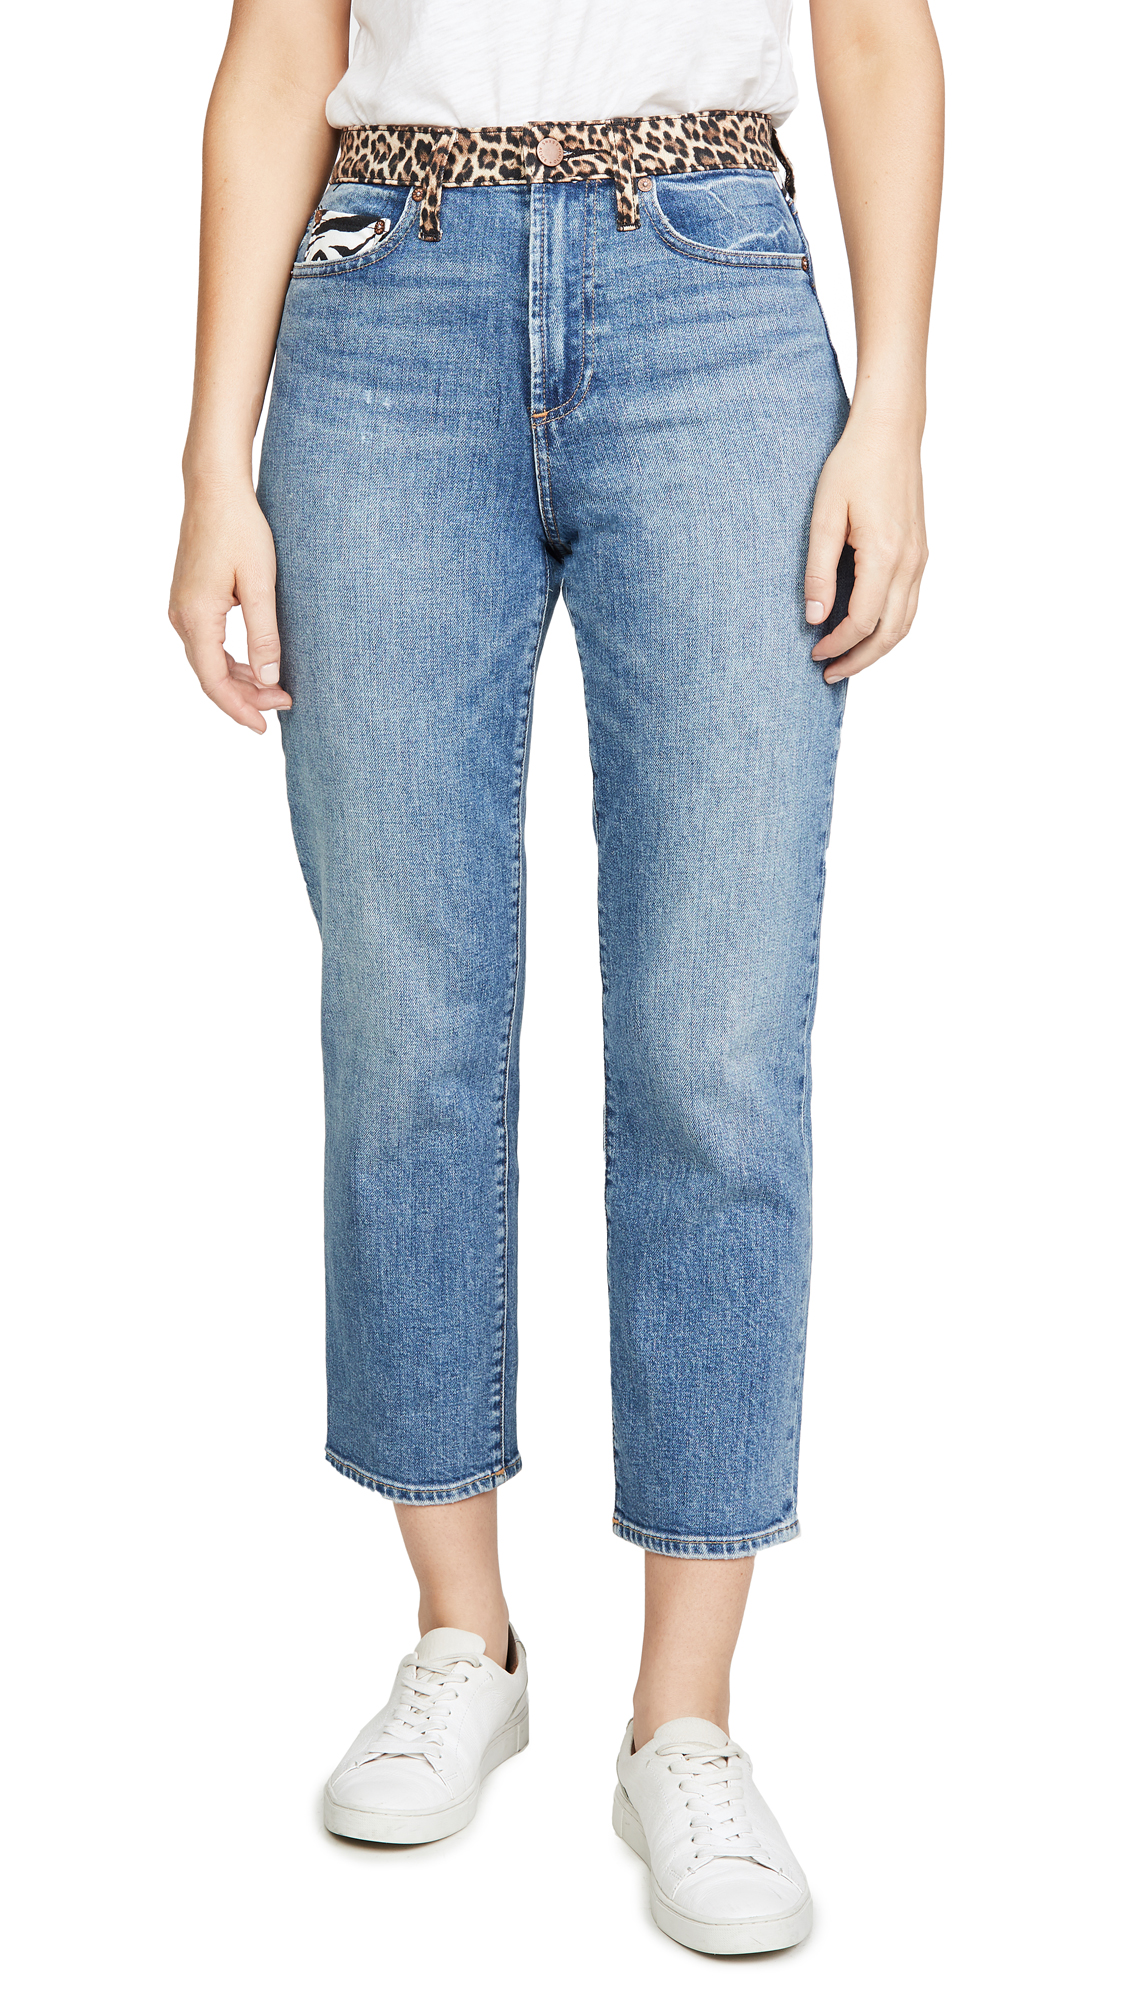 Buy ALICE + OLIVIA JEANS online - photo of ALICE + OLIVIA JEANS Amazing High Rise Girlfriend Jeans